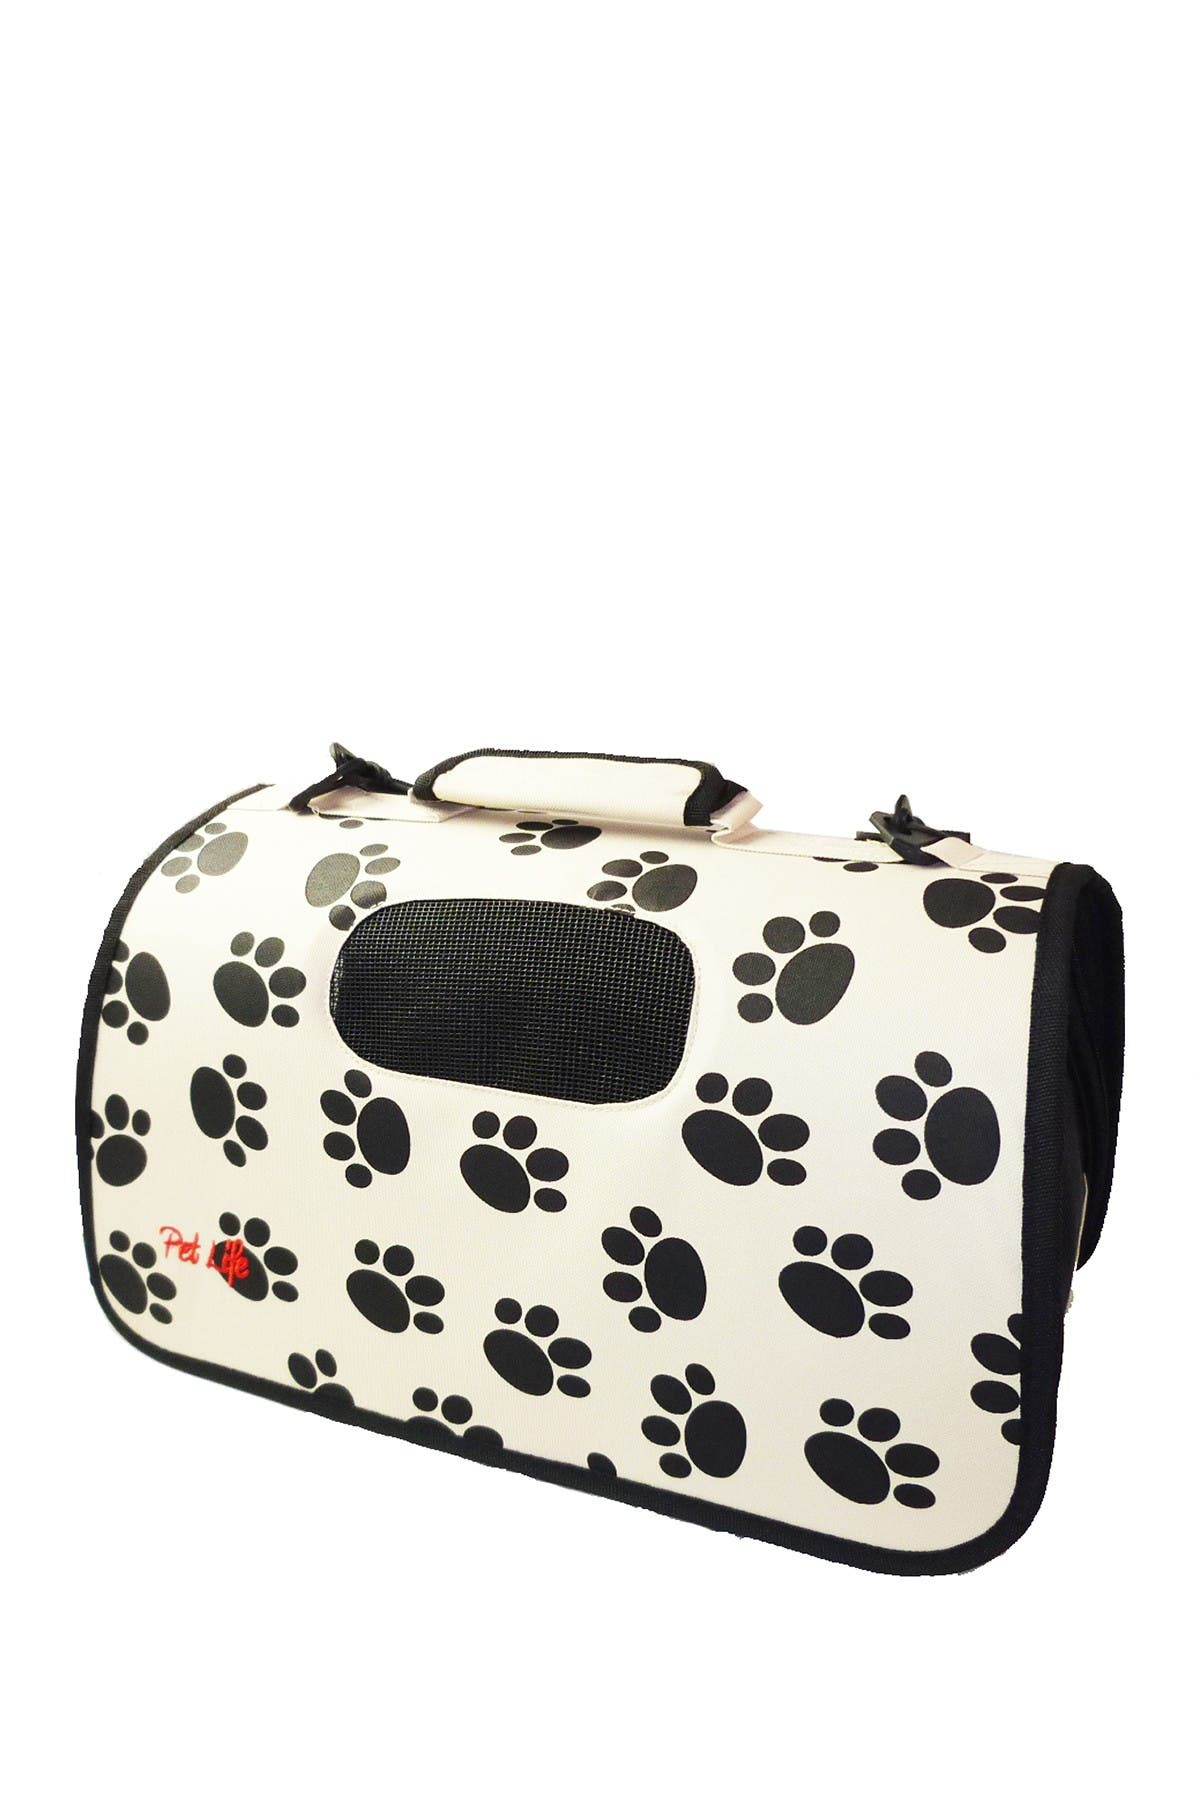 Image of PETKIT Paw Print Airline Approved Folding Zippered Sporty Cage Pet Carrier